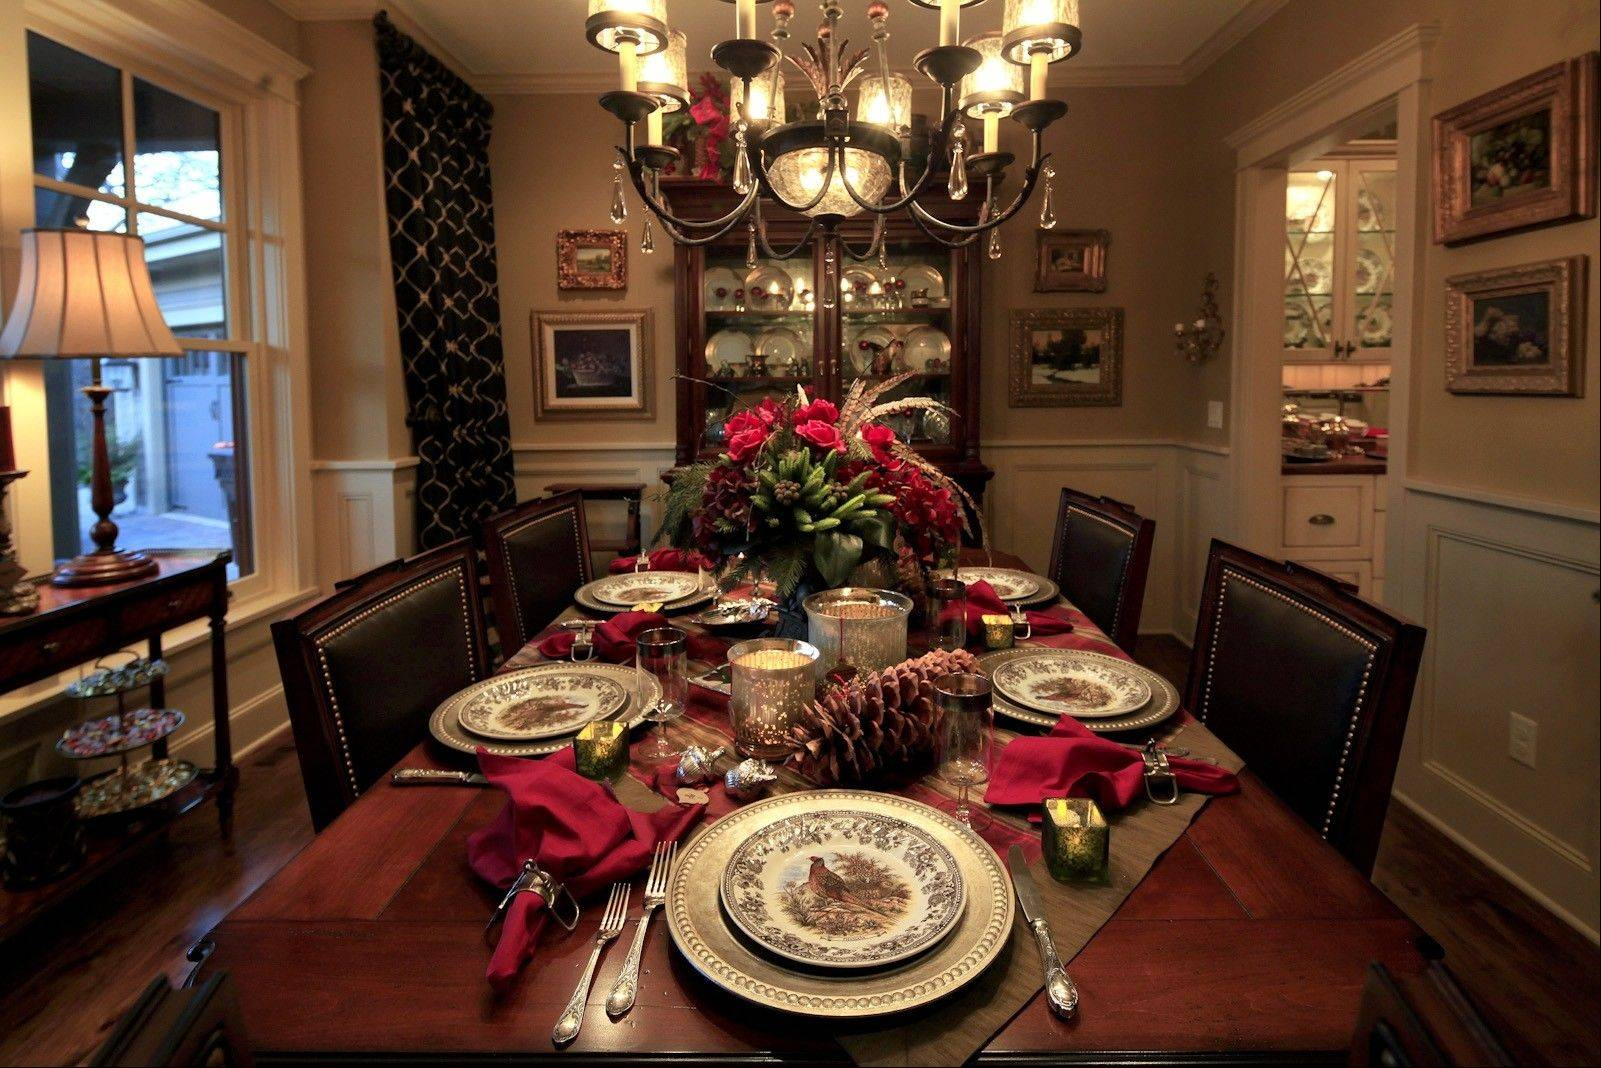 Designer Christina Lynn Miller decked out the dining room of a traditional English-country-style home.